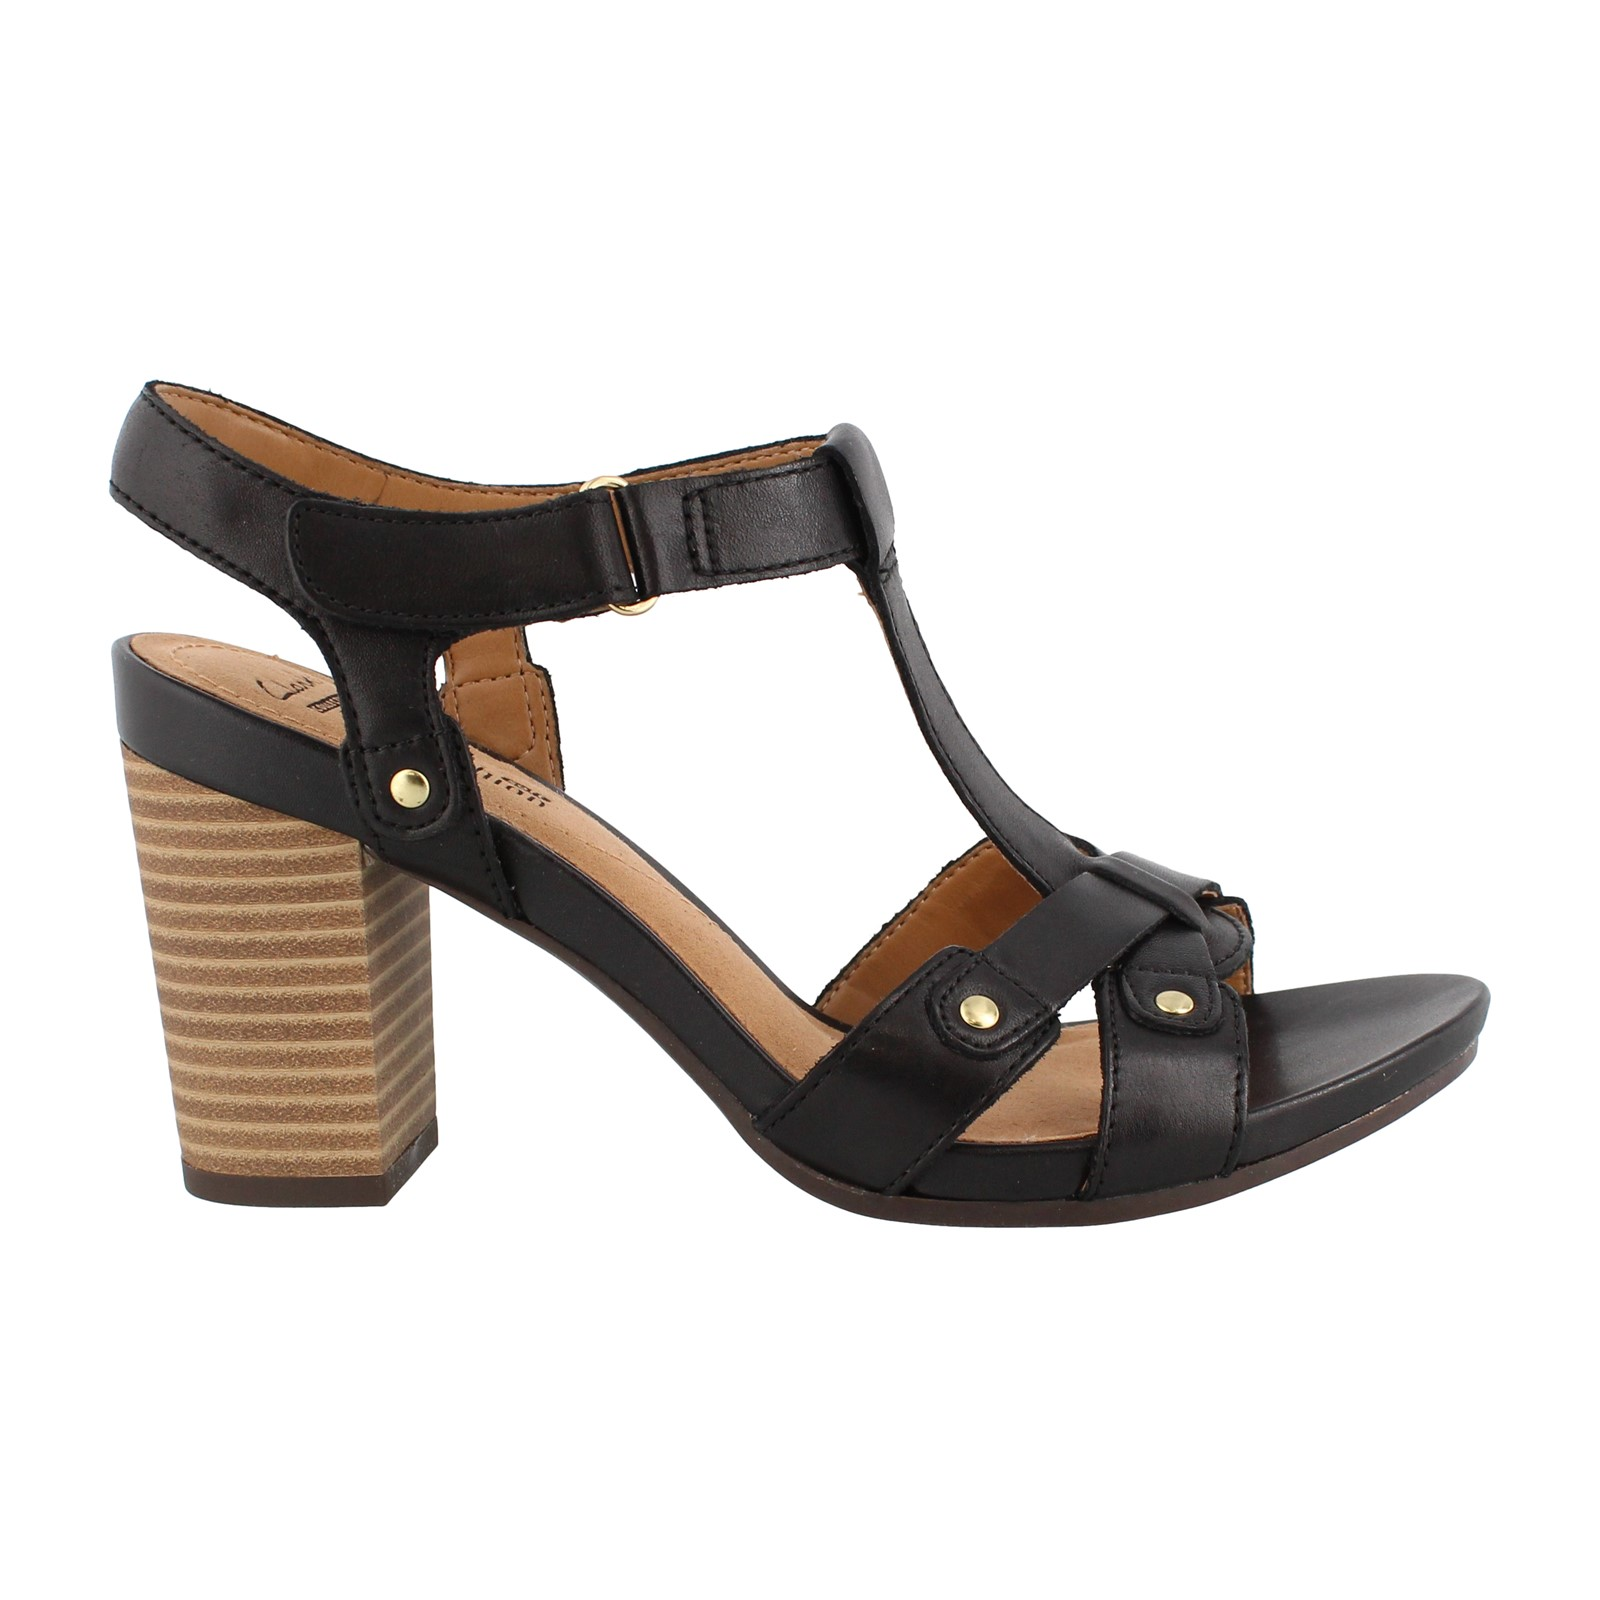 Women's Clarks, Banoy Valtina High Heel Sandals